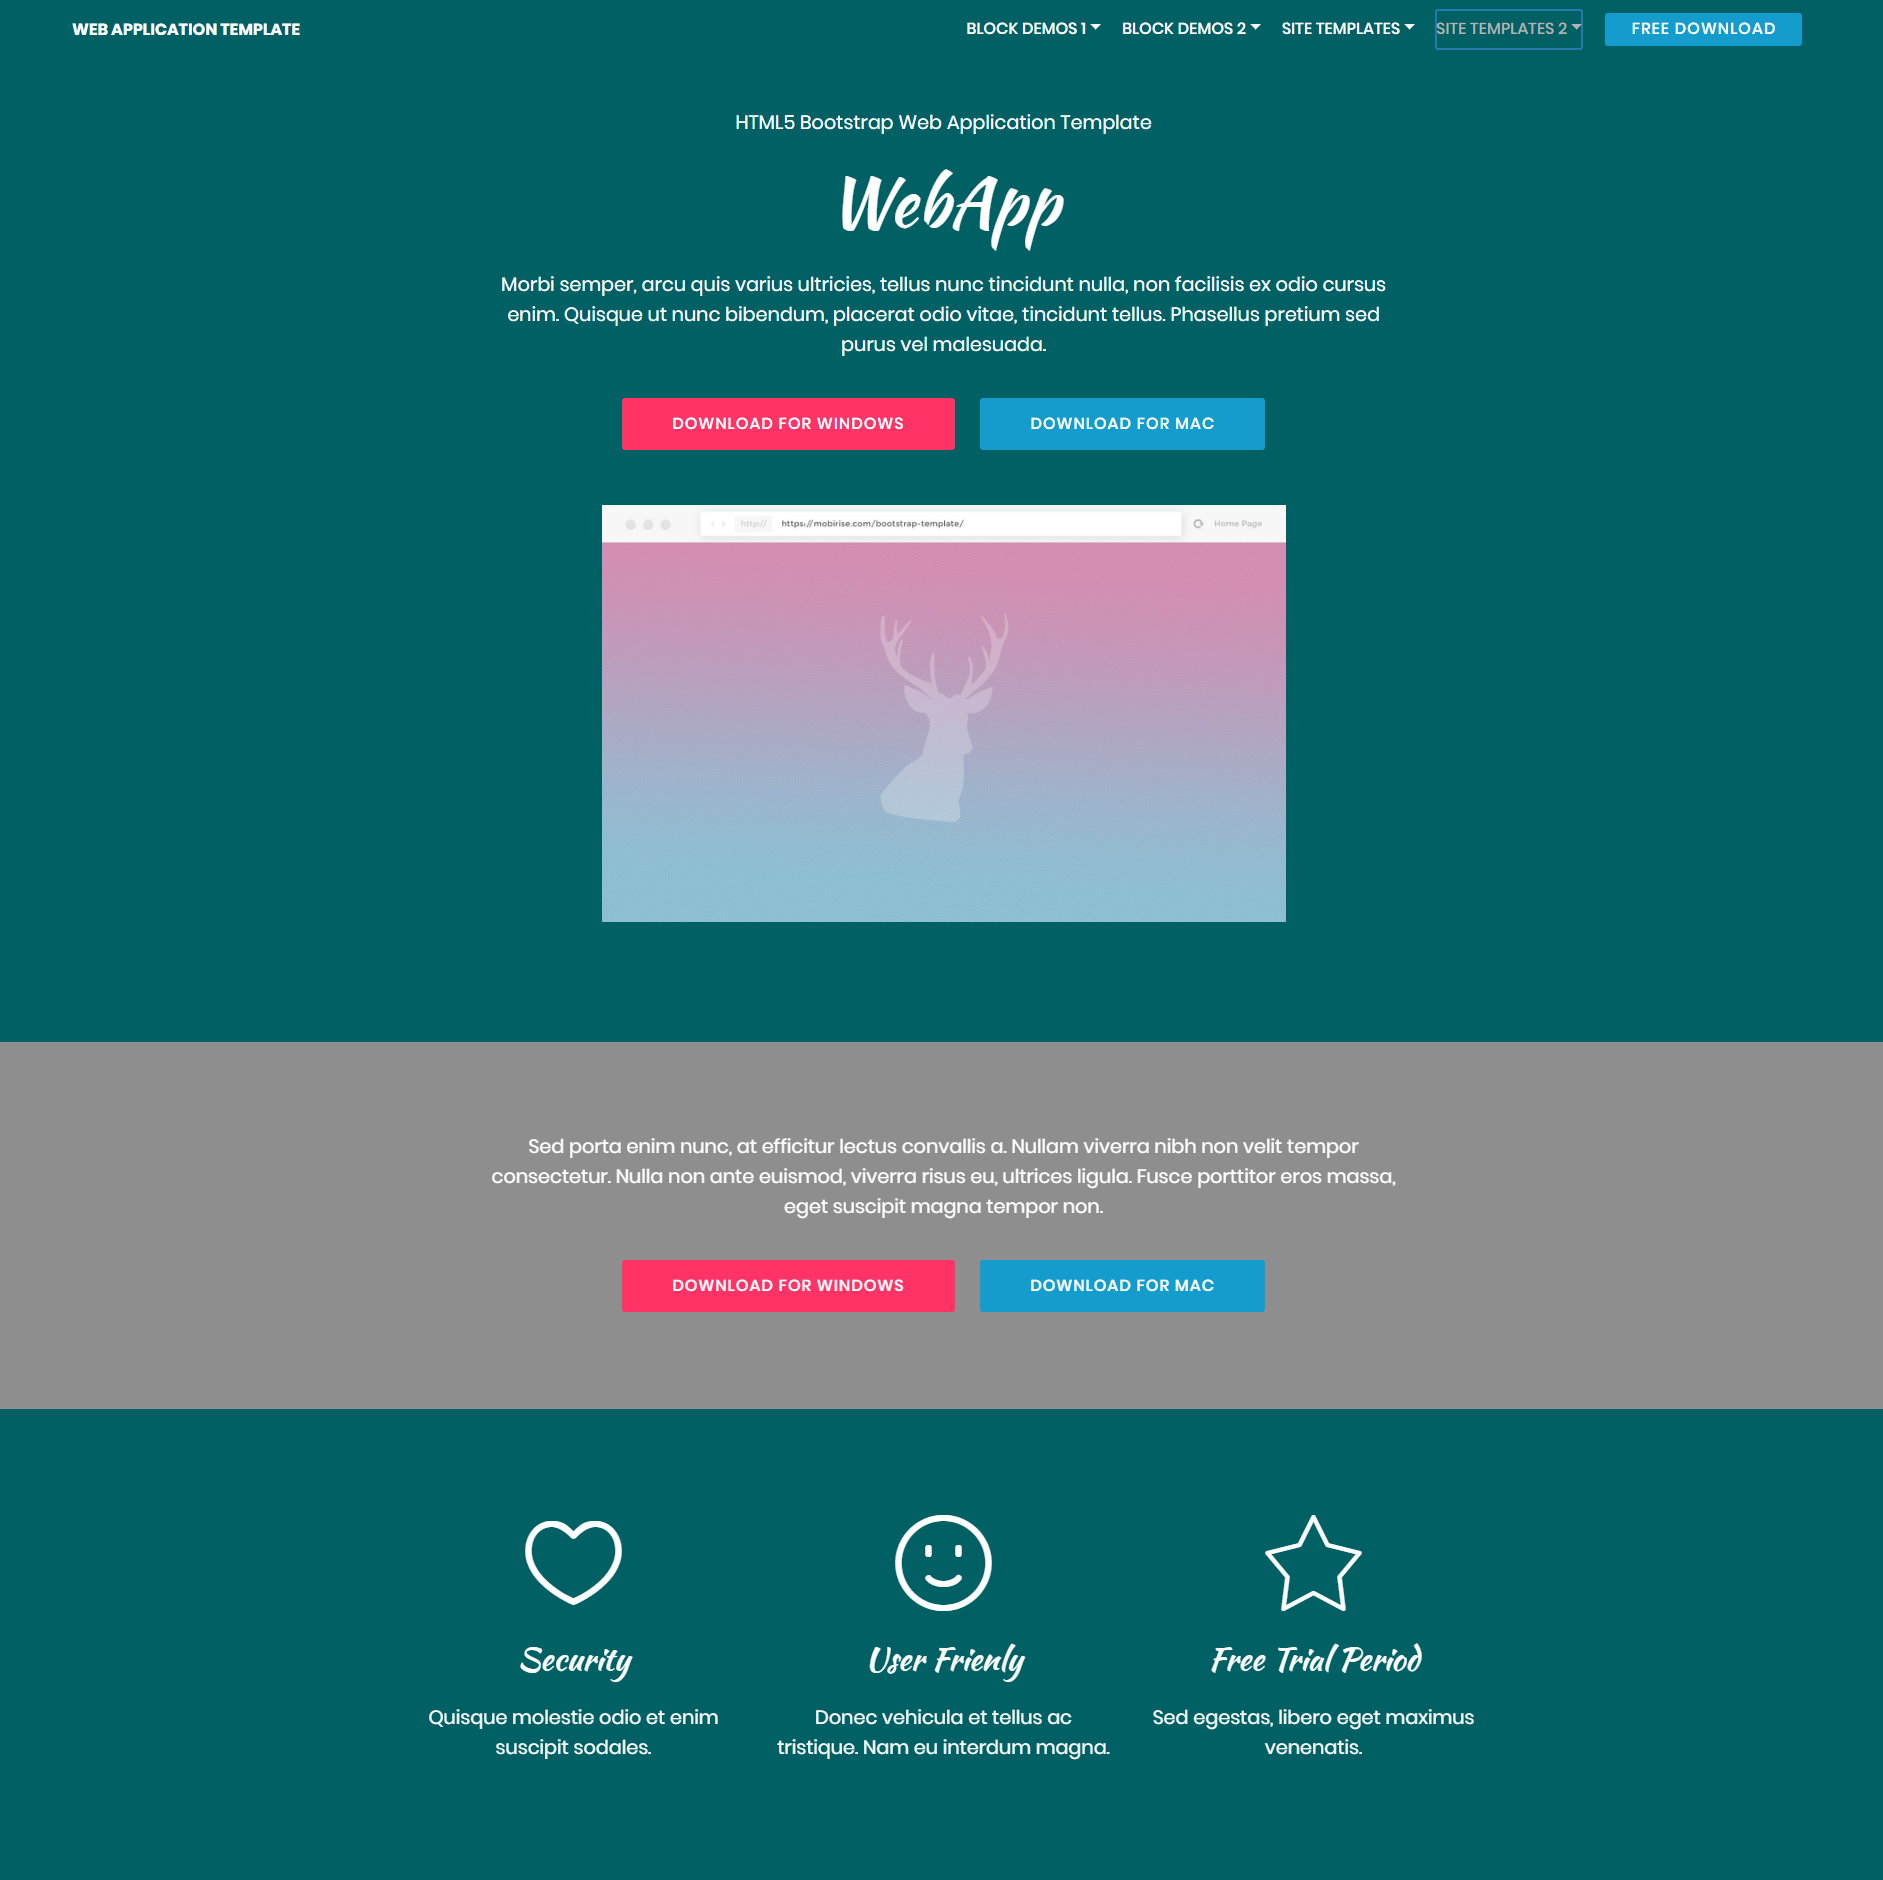 HTML Bootstrap Web Application Templates